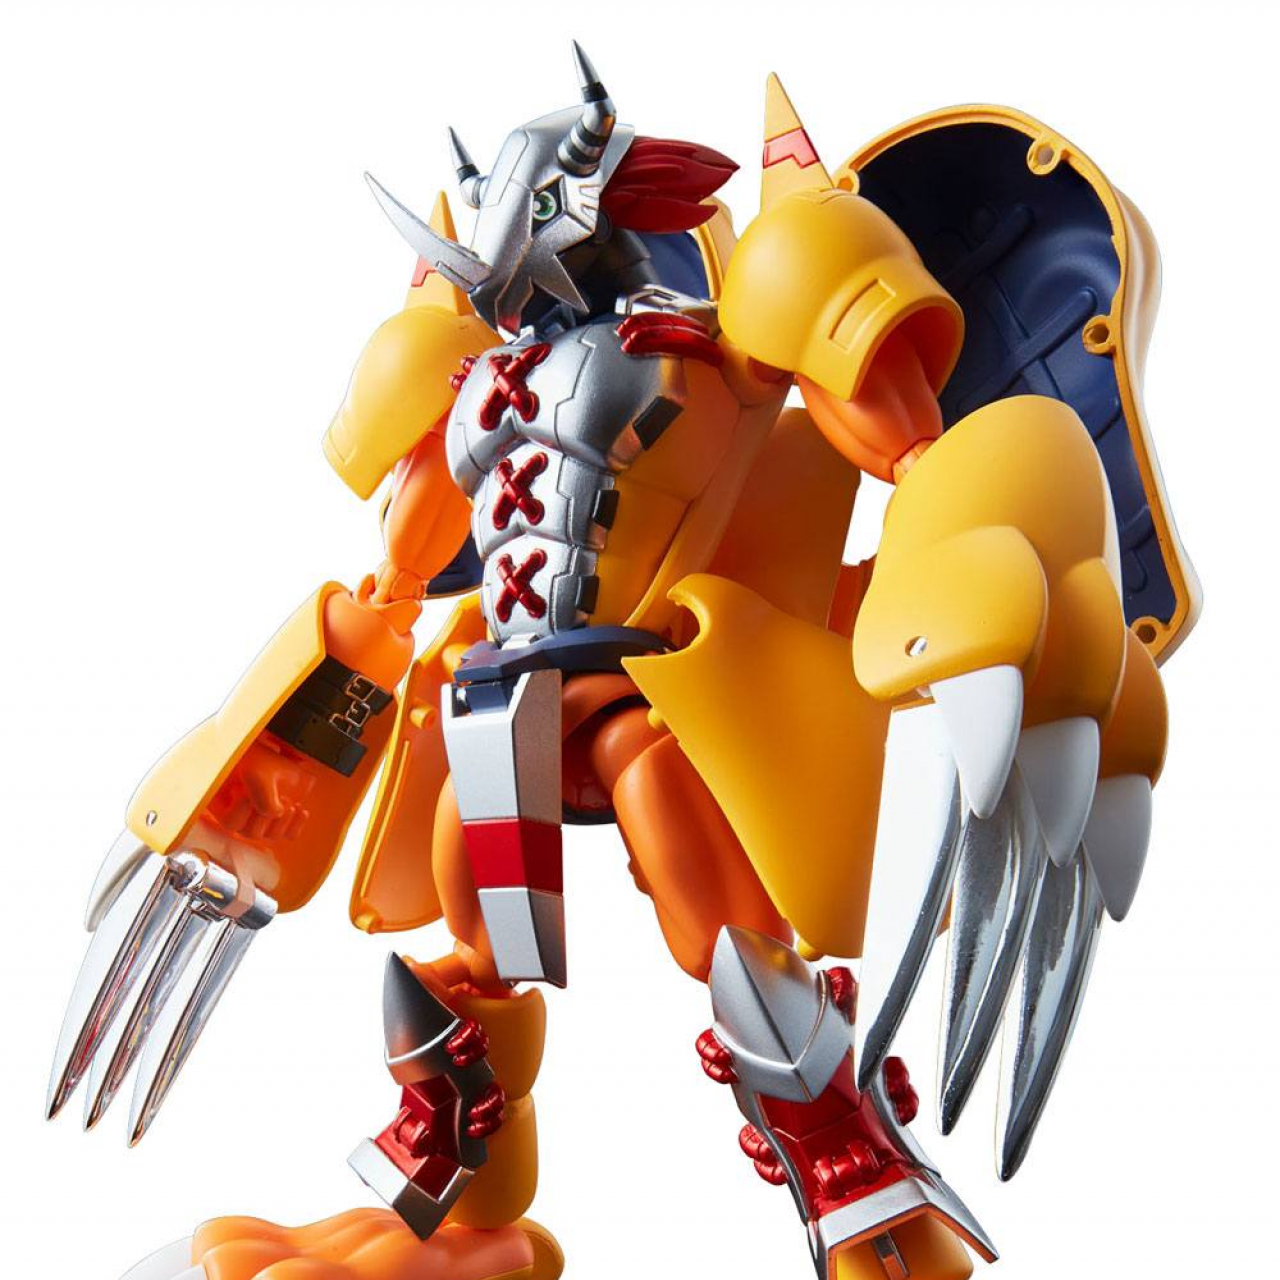 Digimon Adventure Digivolving Spirits Action Figure 01 Wargreymon (Agumon) 16 cm